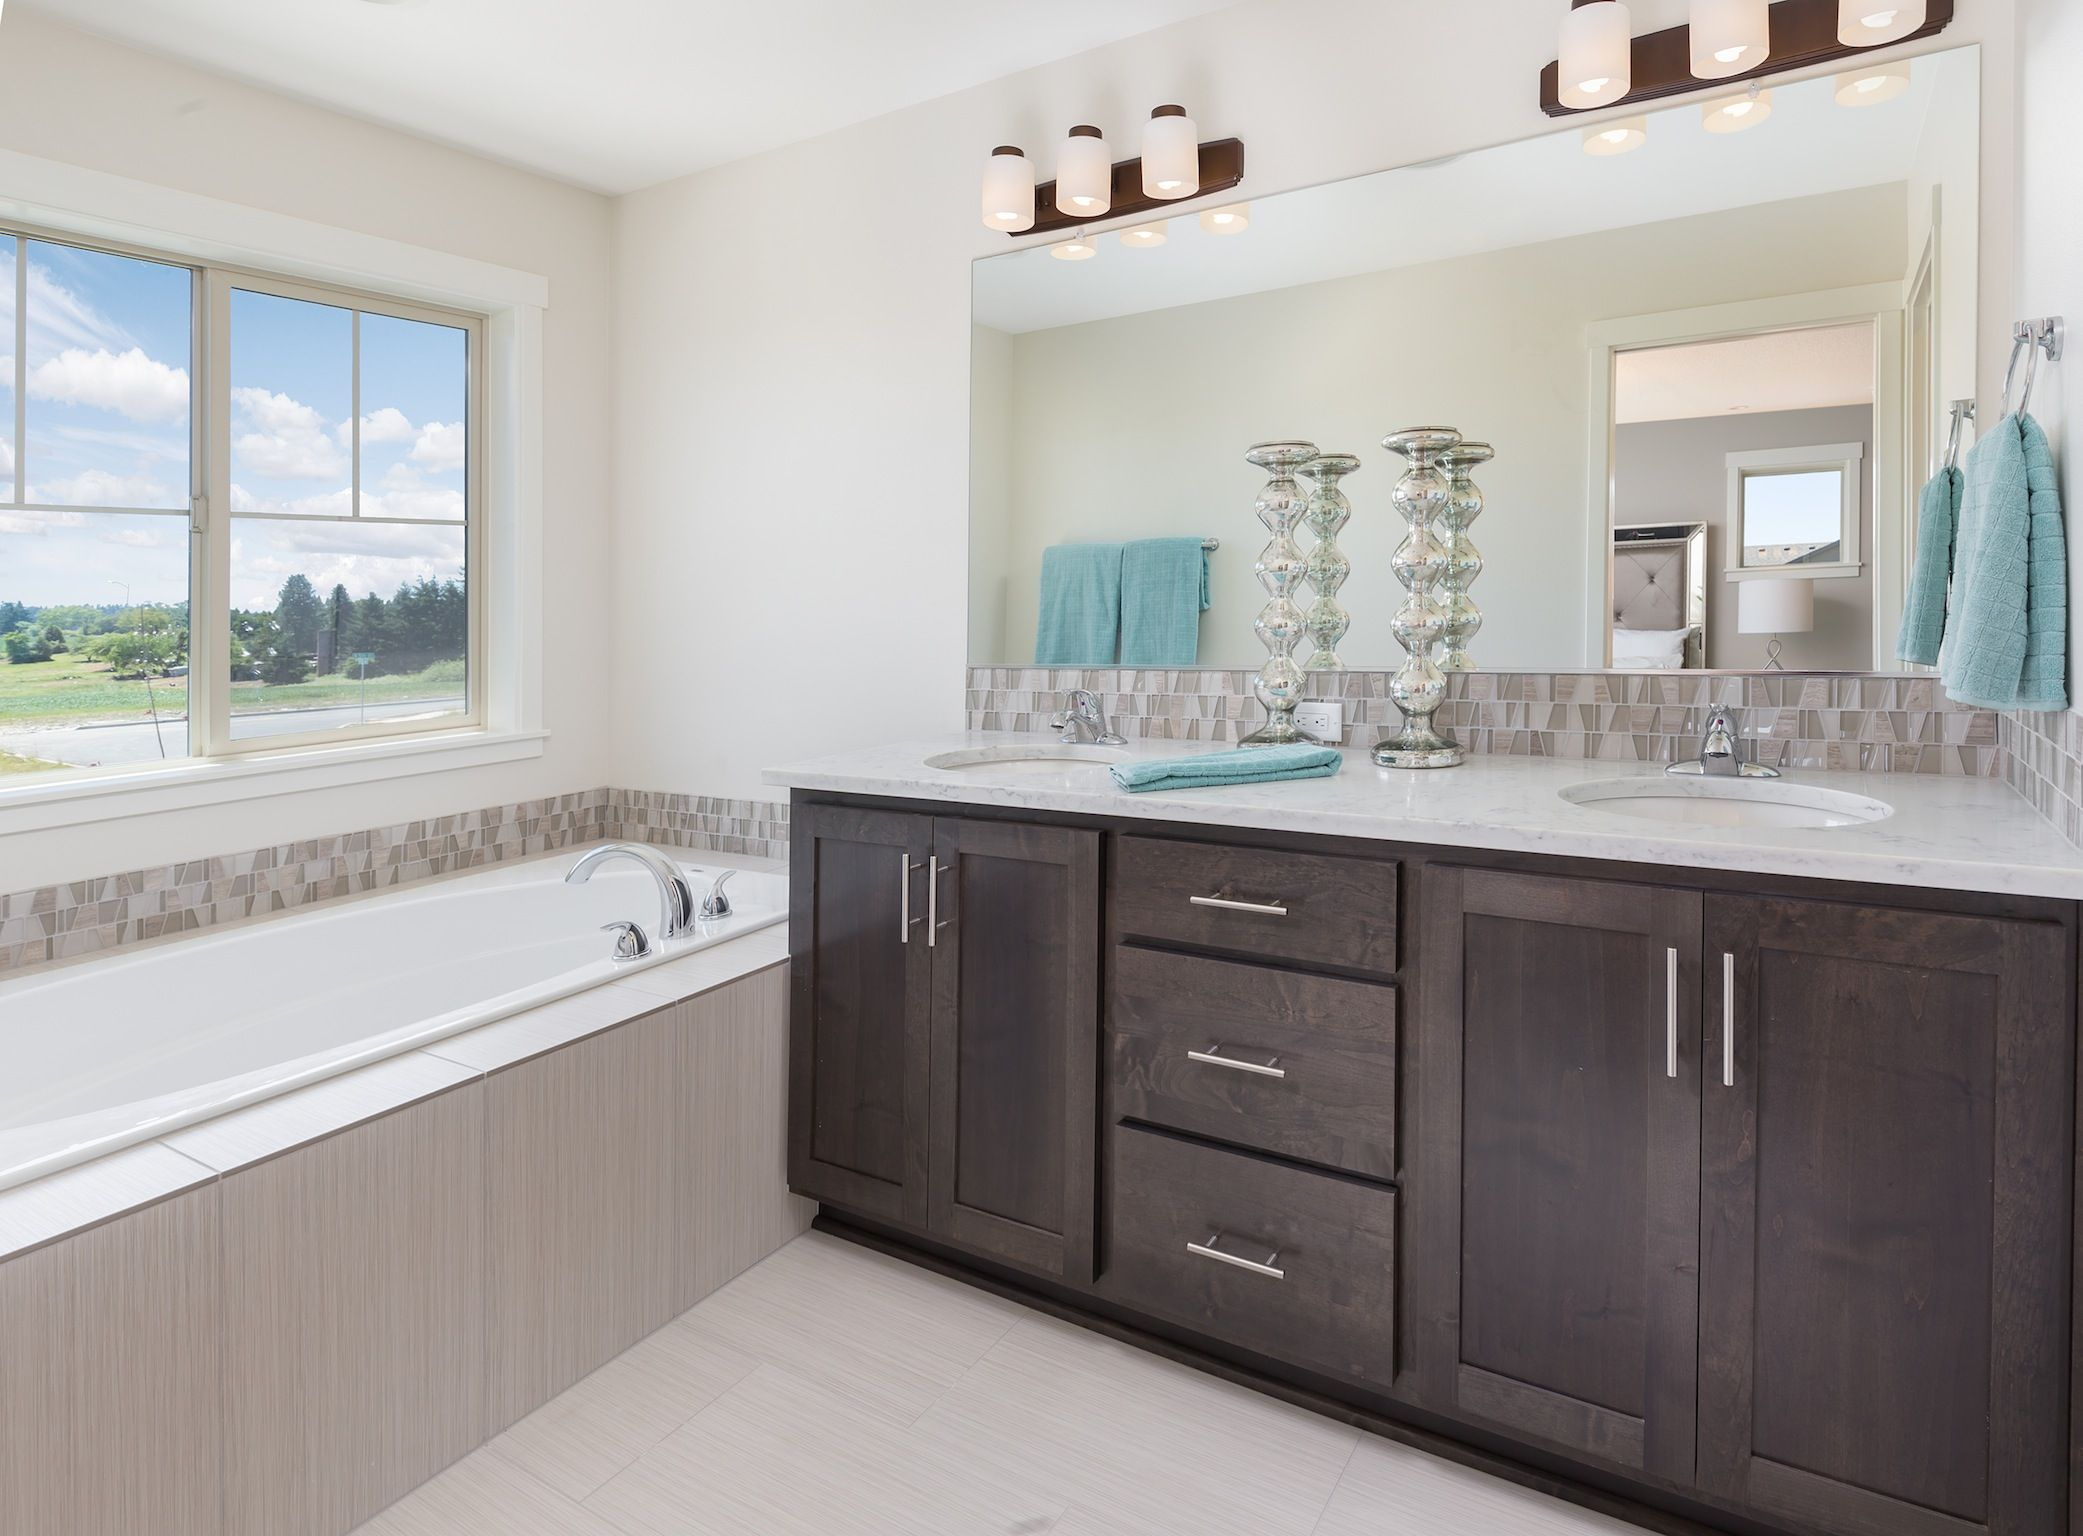 Model Home Bathroom discovery ridge model home - new tradition homes | discovery ridge